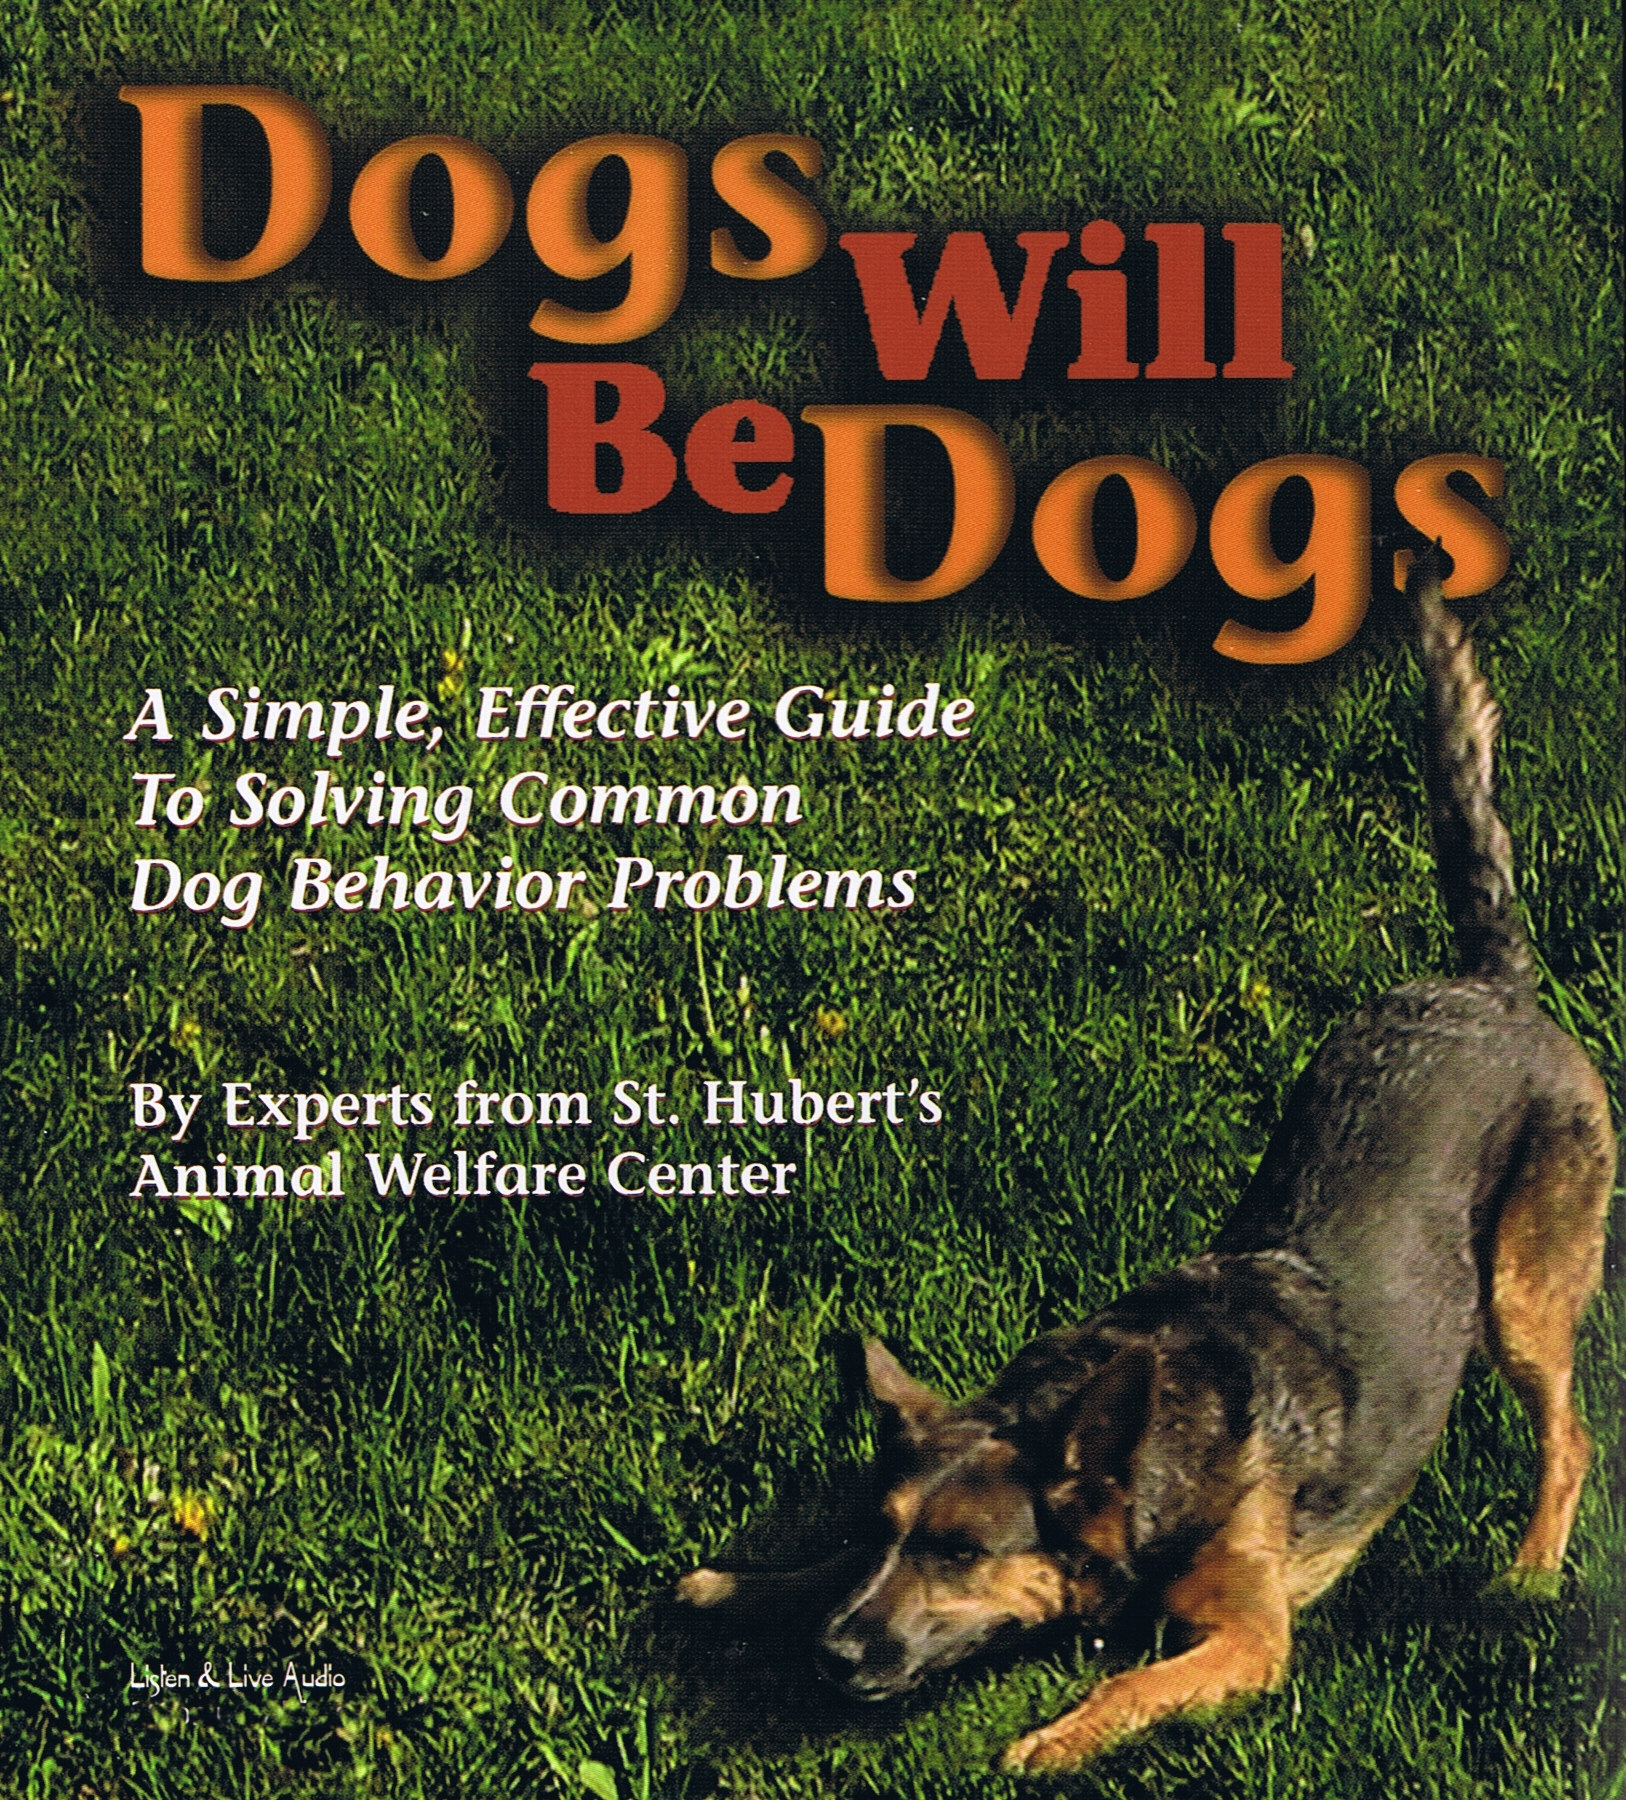 Dogs Will Be Dogs [2CD]